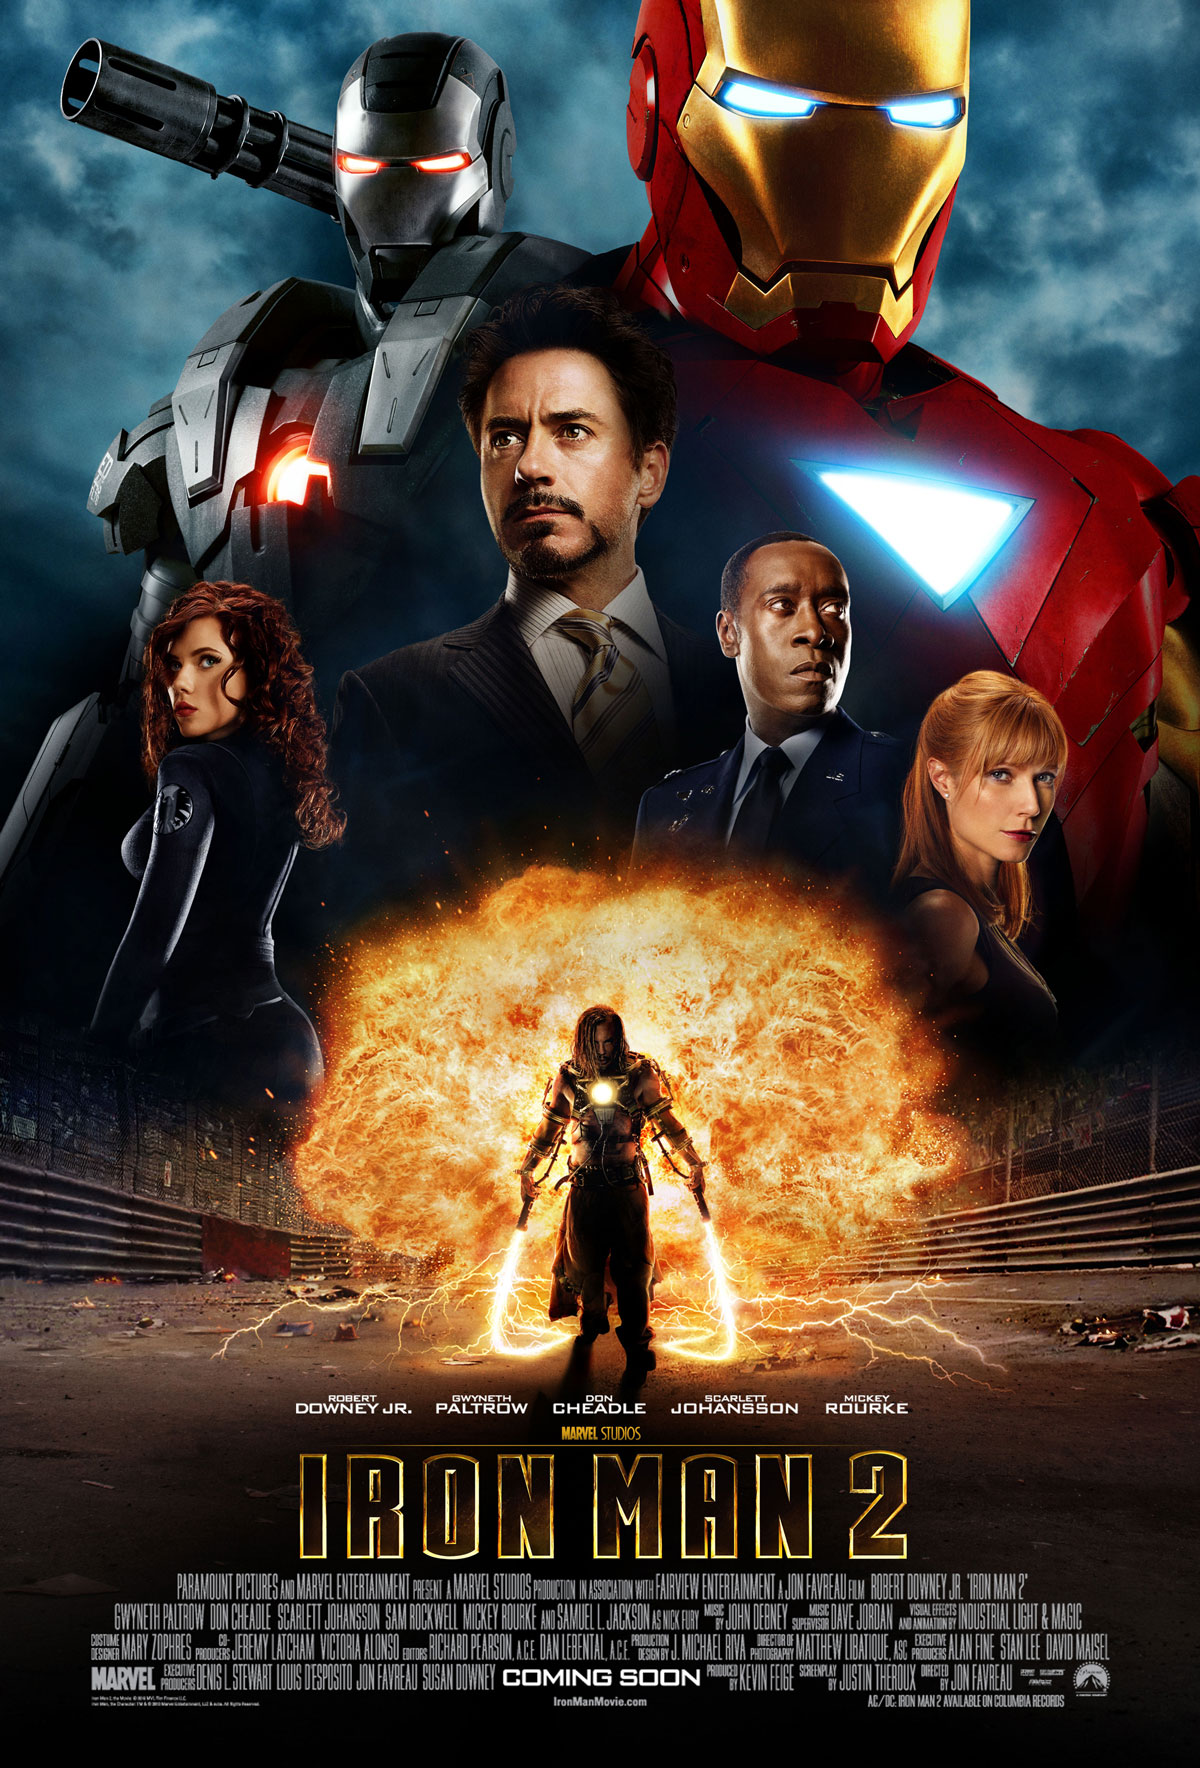 Iron man 2 Movies Review, Story, Cast